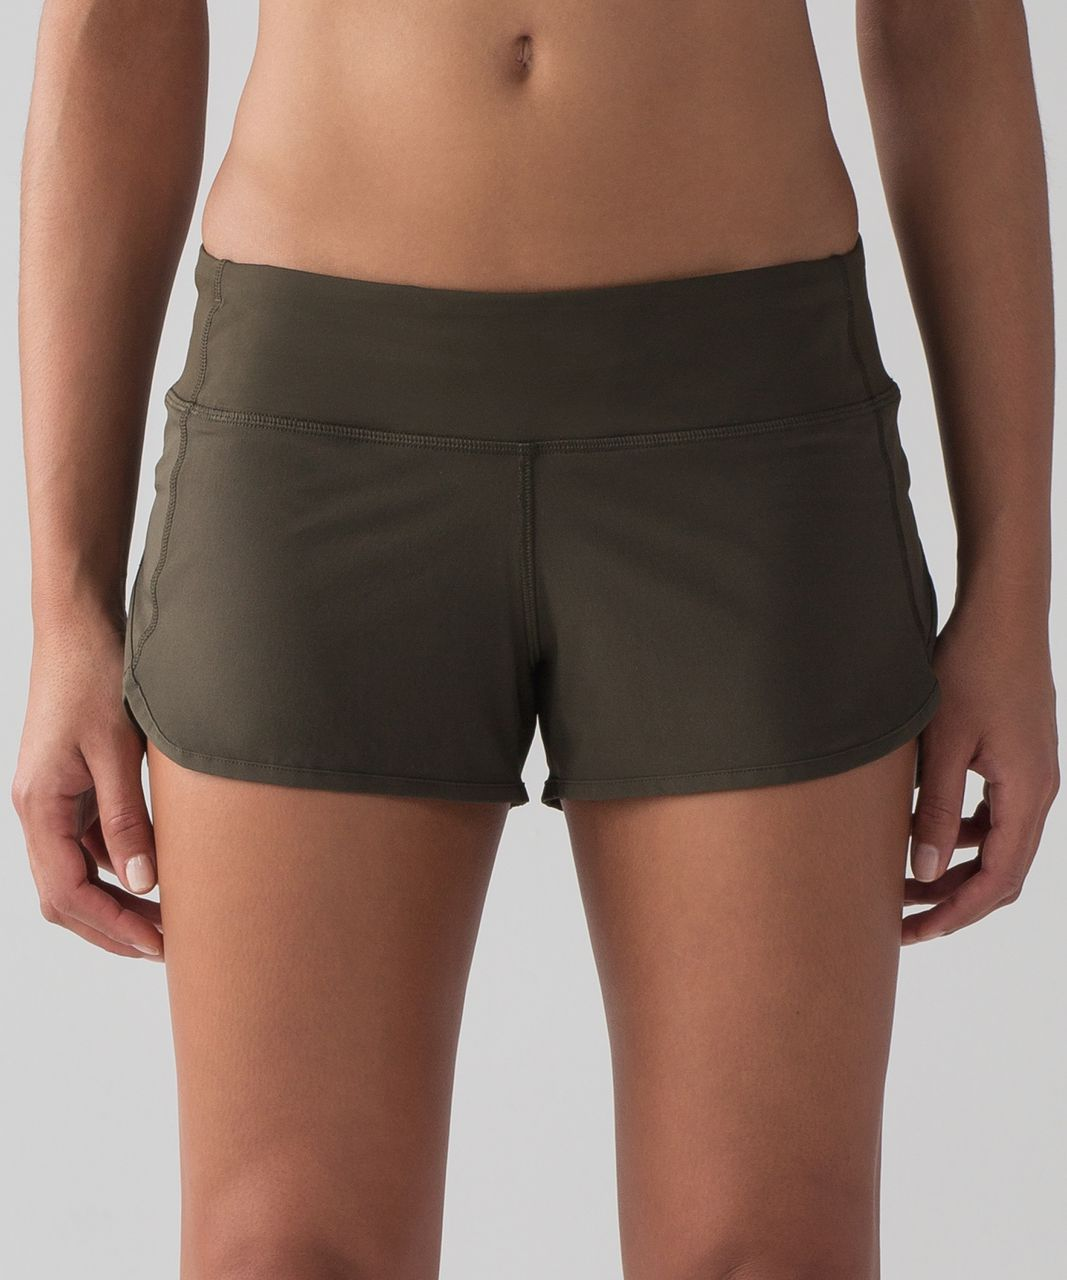 "Lululemon Speed Short (4-way Stretch 2 1/2"") - Dark Olive"